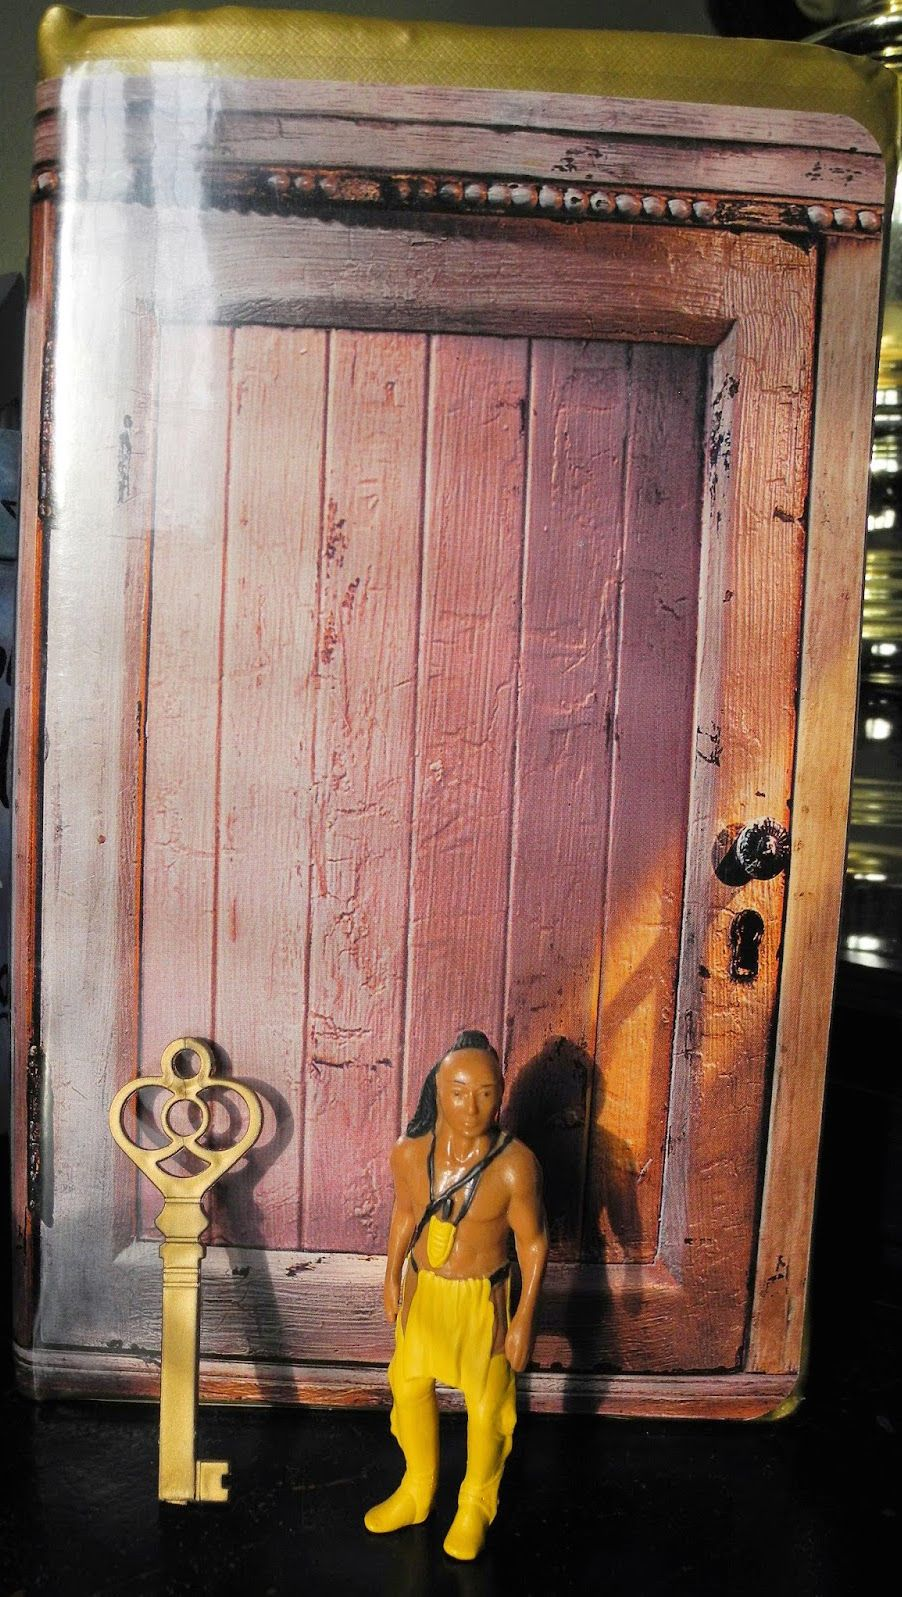 Indian In The Cupboard Vhs Cupboard With Indian And Key 1 16 96 Indian In The Cupboard The Good Old Days Mural